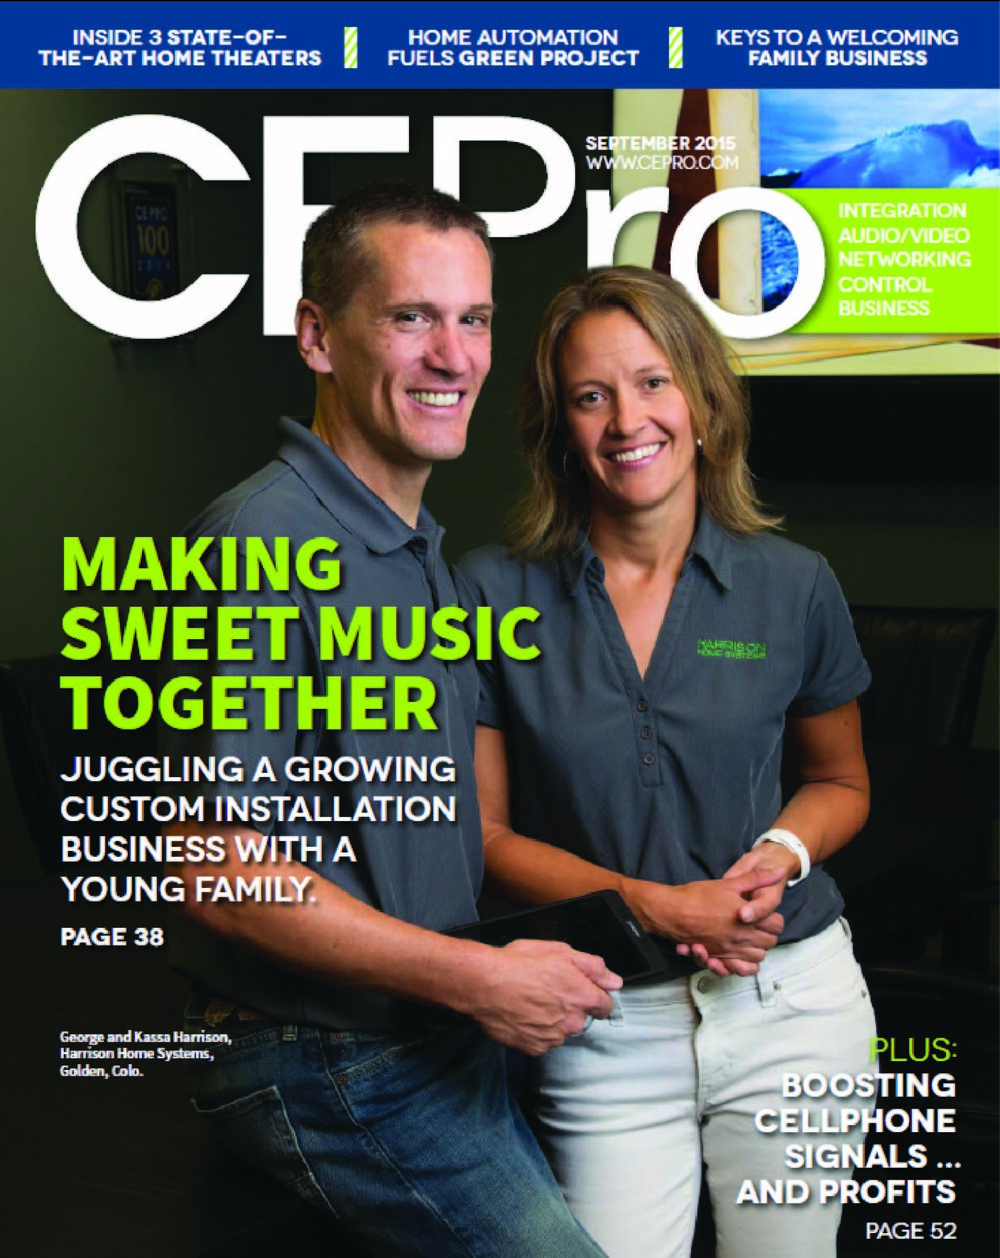 Harrison Home Systems honored with CE PRO Cover Story in 2015